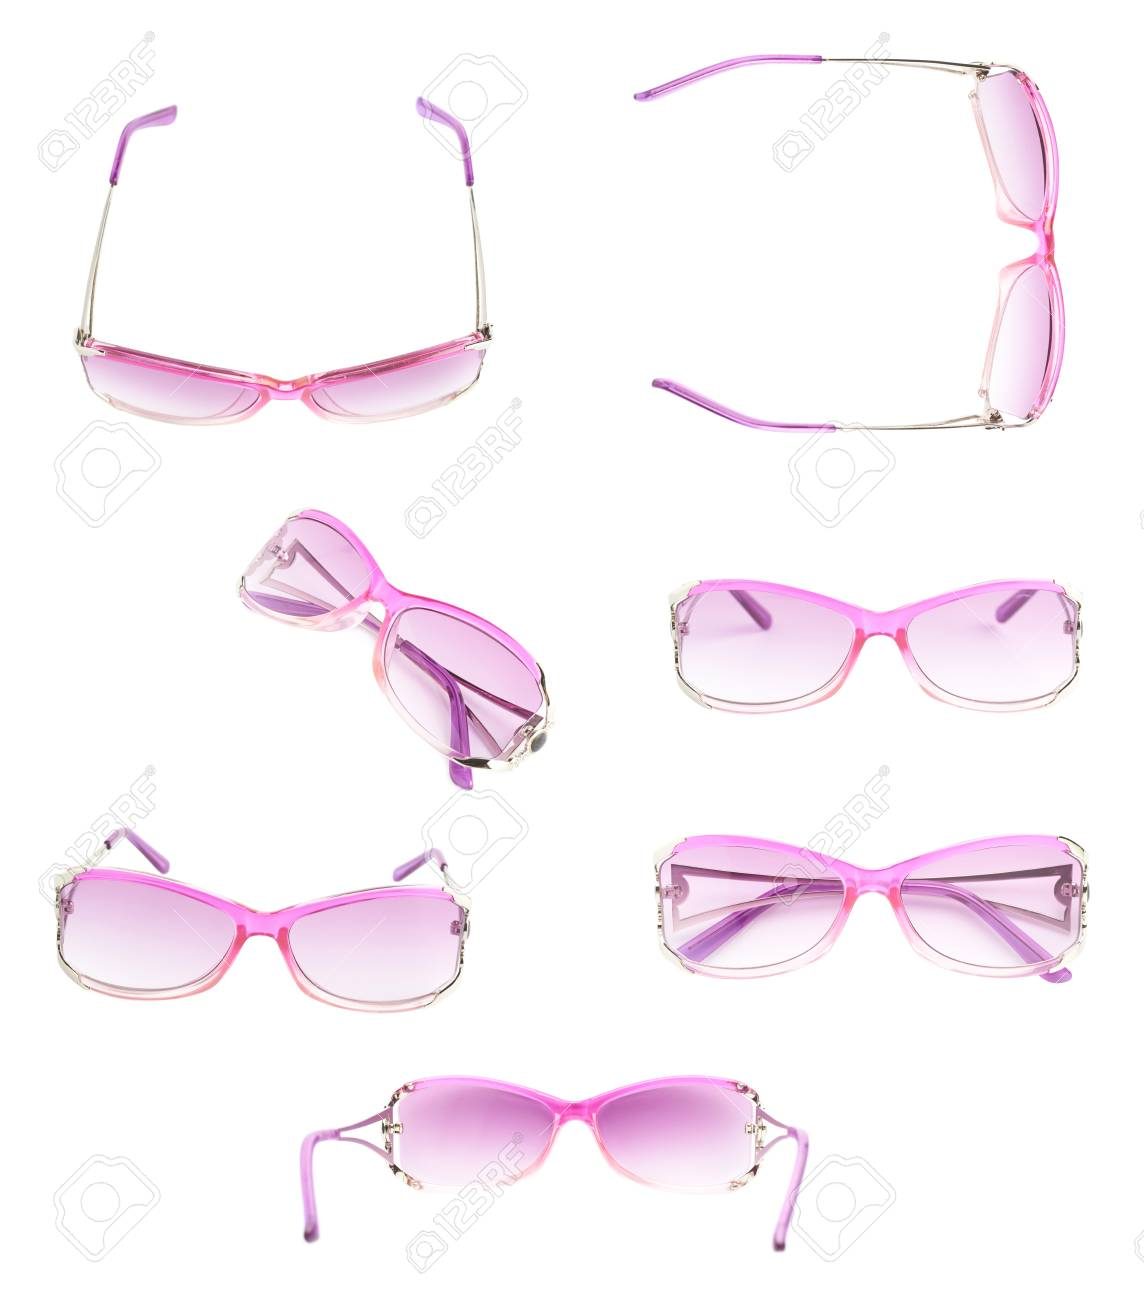 0d2fae64e724 Pair of stylish pink female glasses isolated over the white background